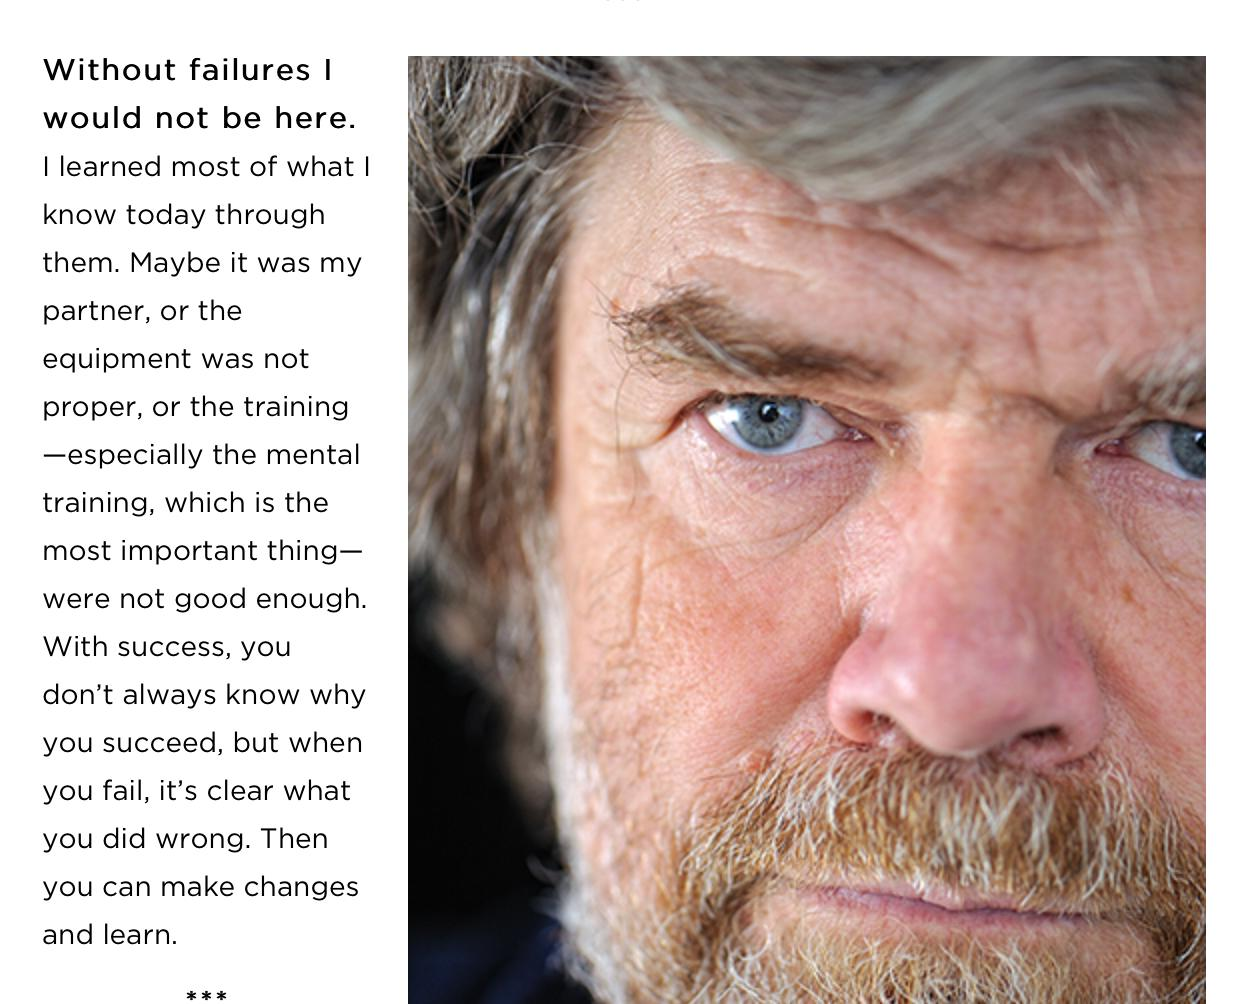 [Image] Mountaianeer Reinhold Messner on failure (from Rock and Ice Magazine)